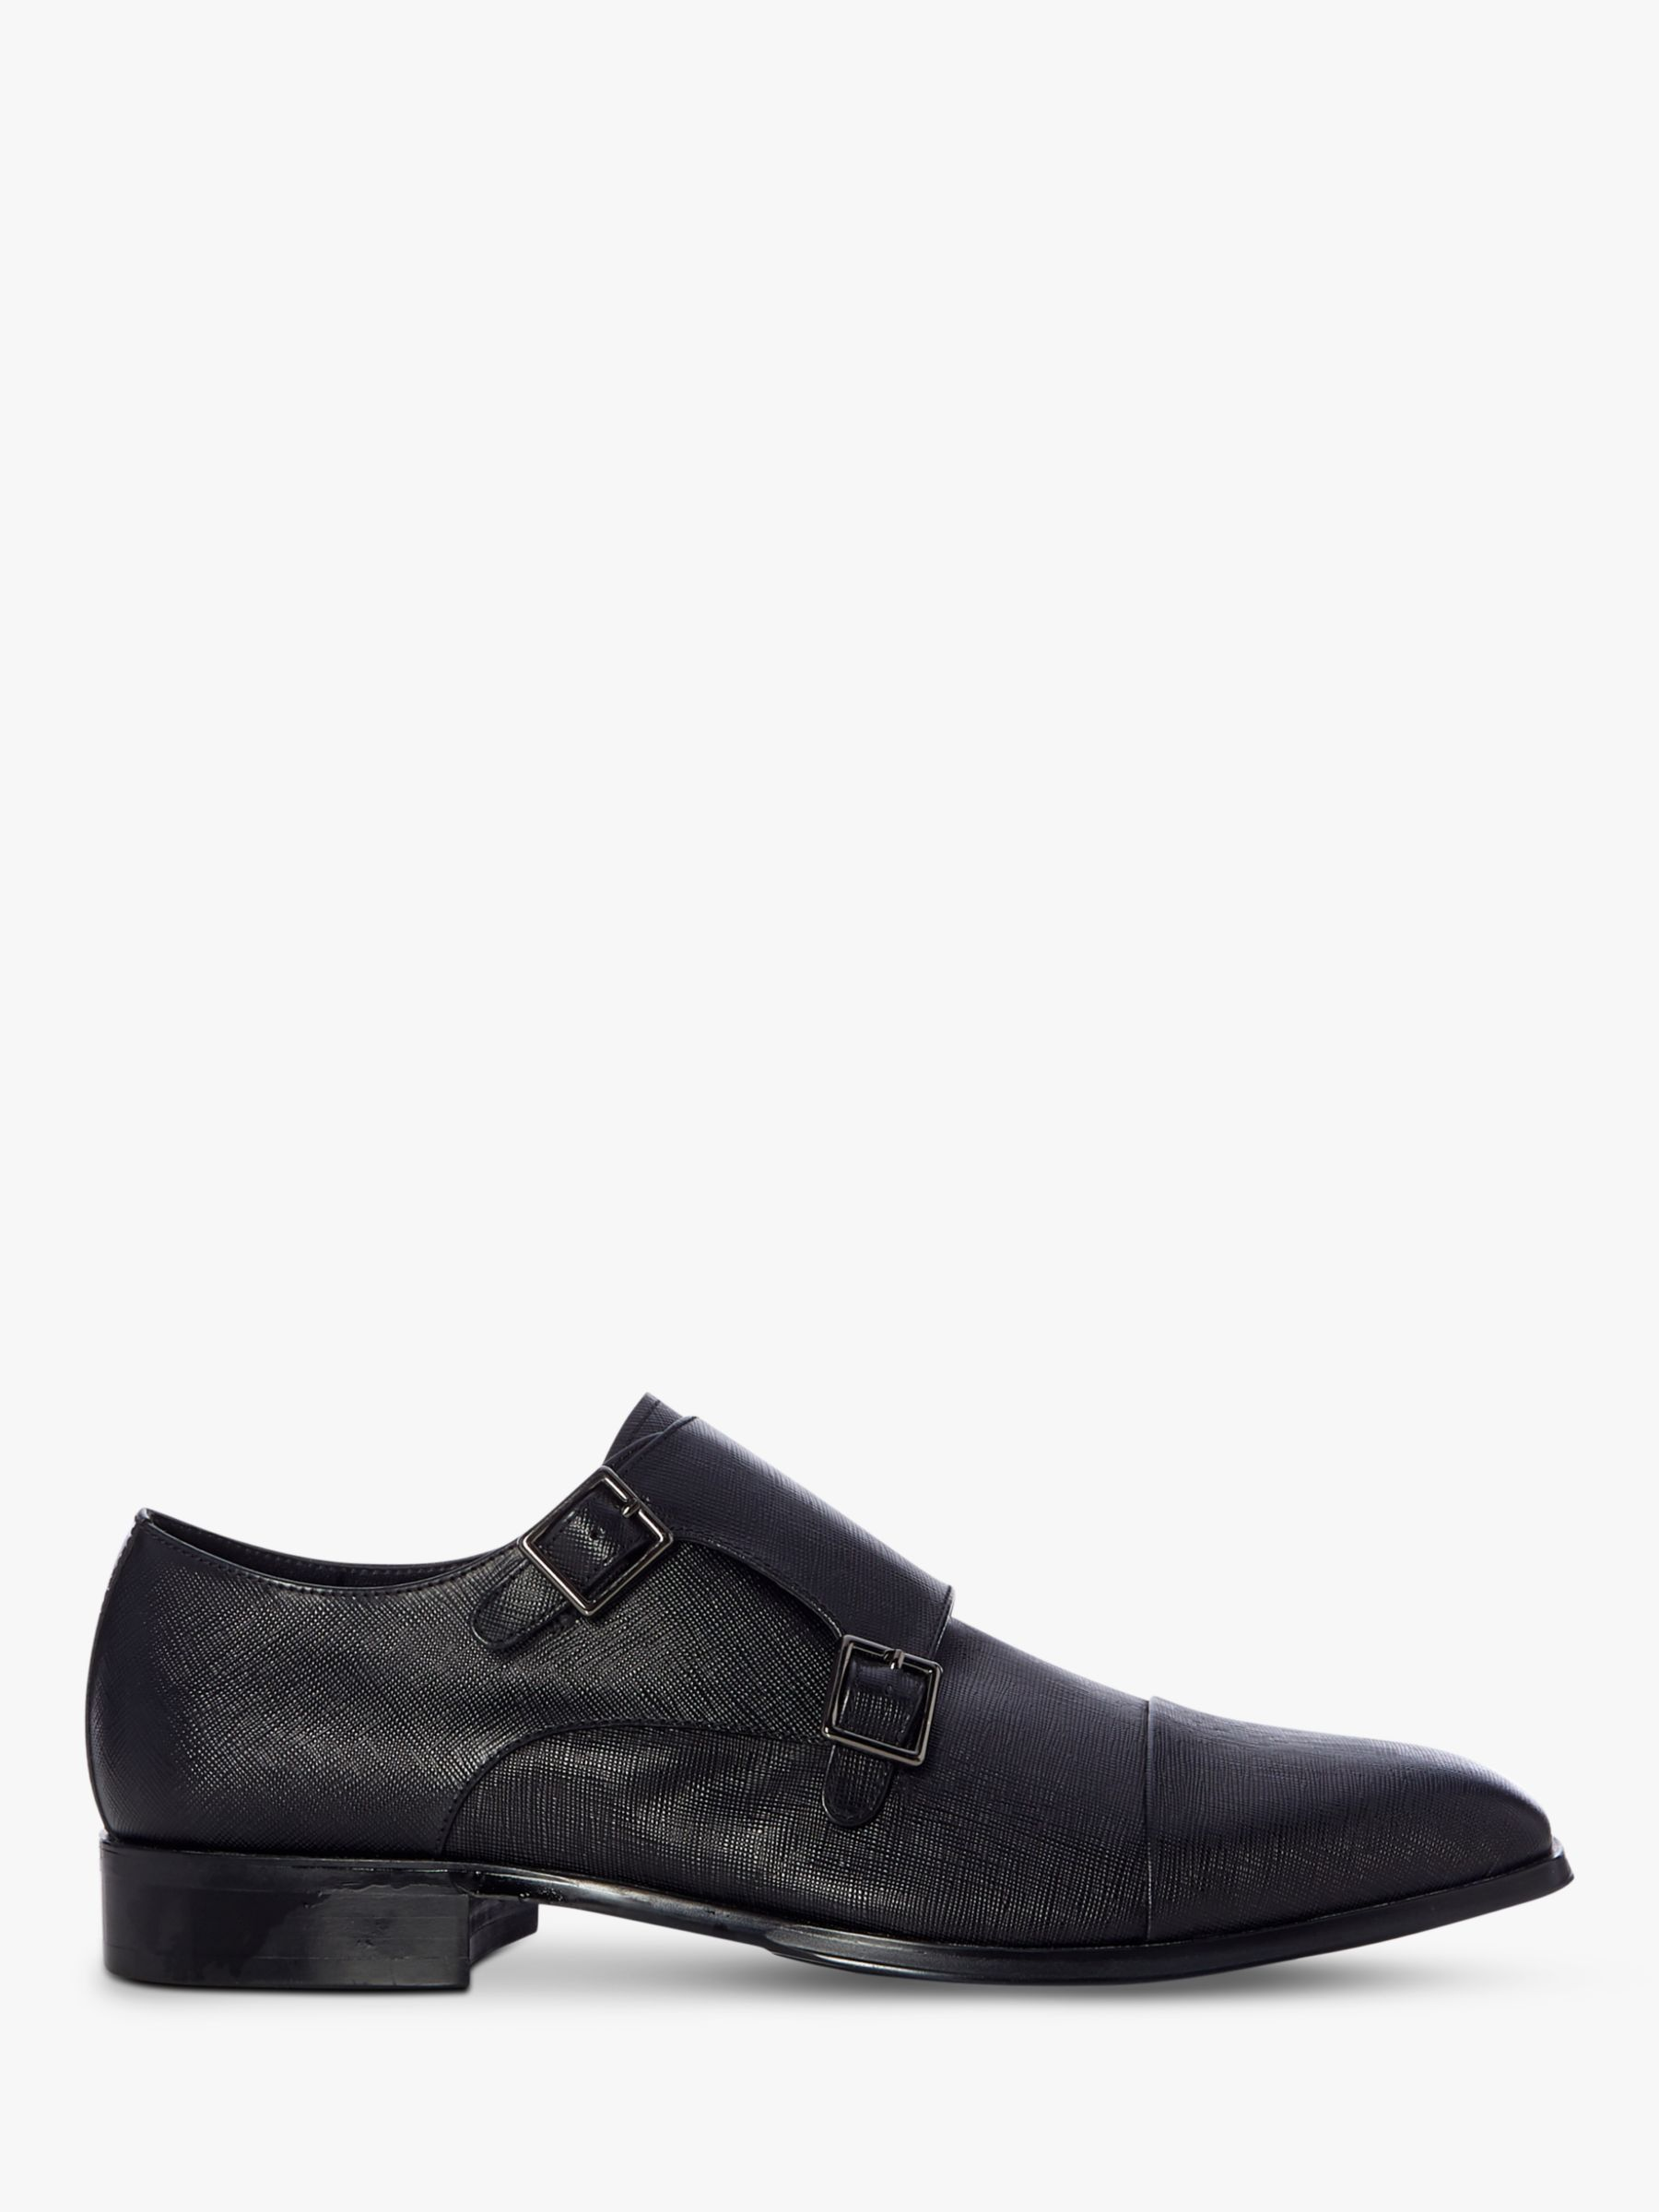 Dune Dune Scroll Leather Monk Shoes, Black